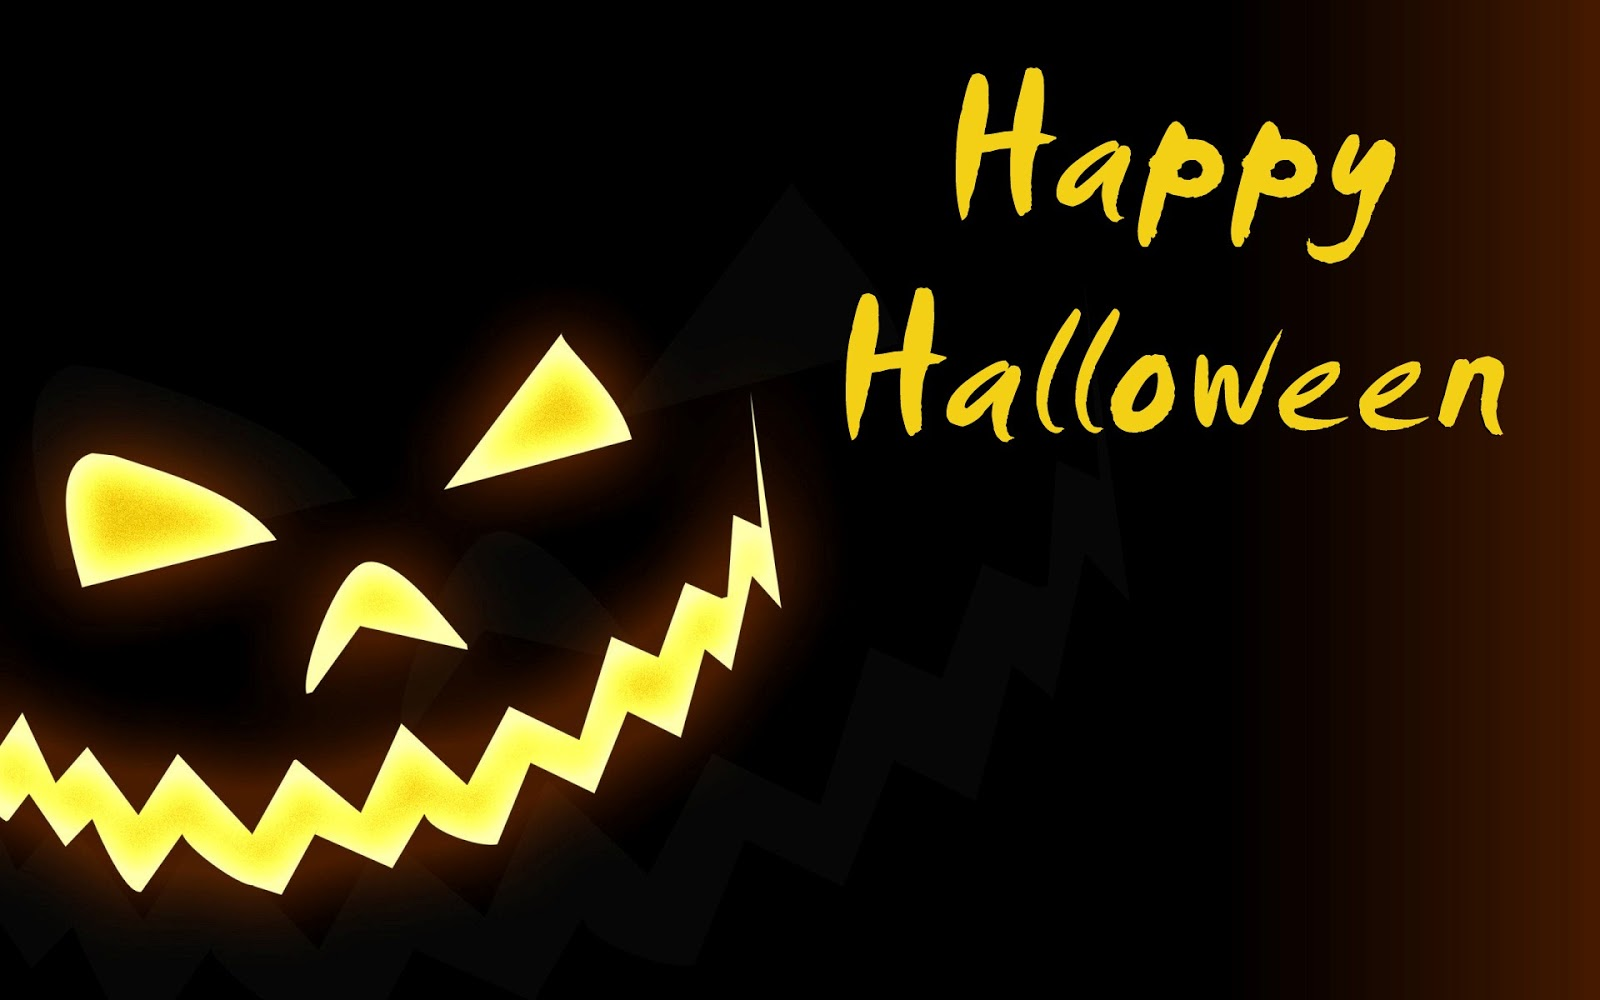 HD Wallpapers of Happy Halloween Day - Halloween Day HD ...